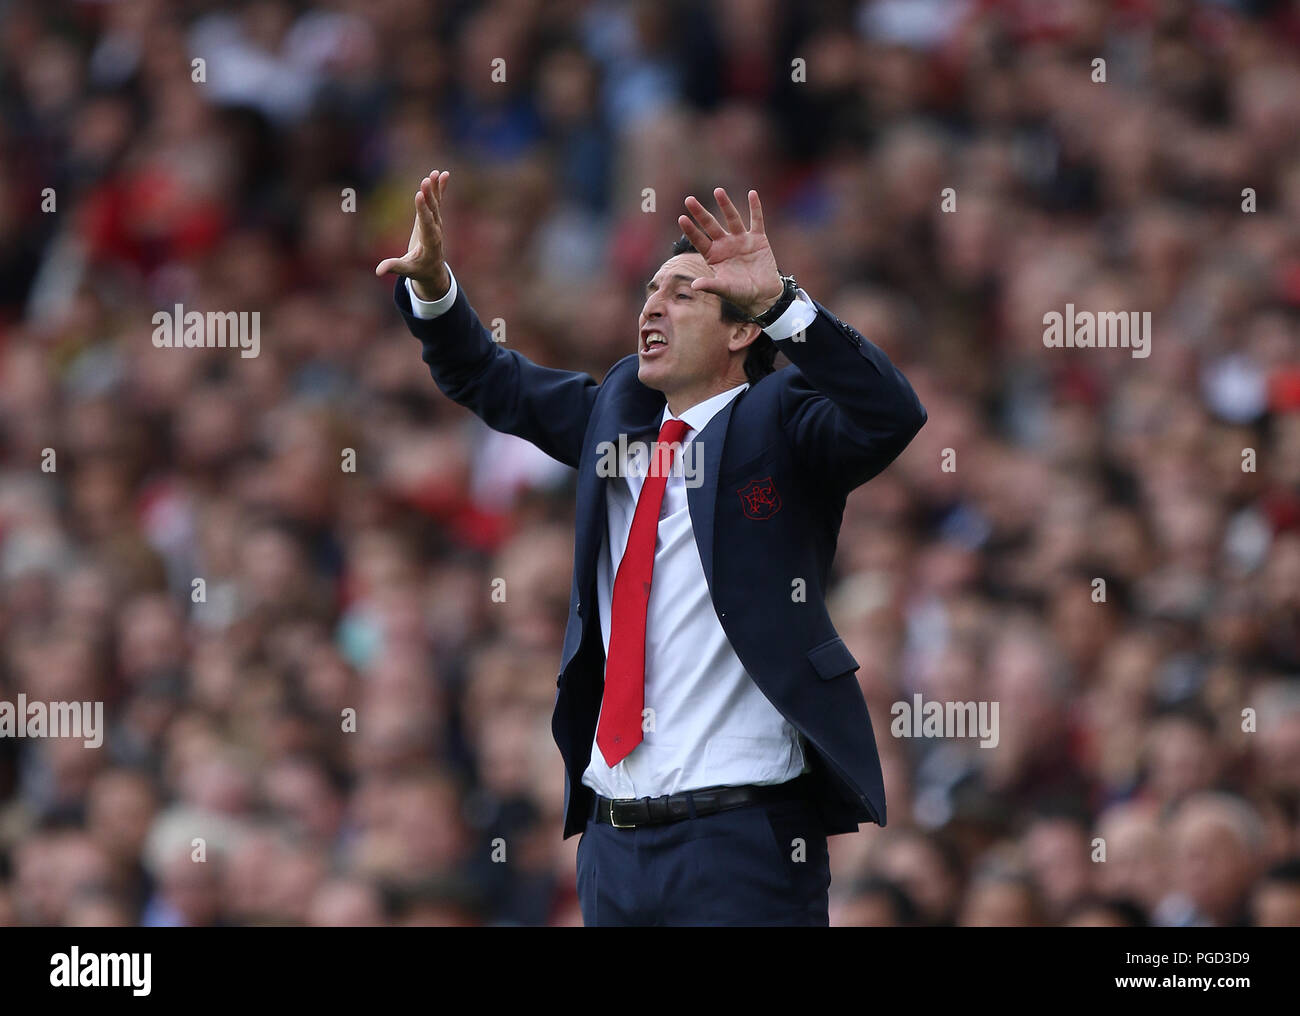 London, UK. 25th Aug 2018. Unai Emery (Arsenal manager) at the Arsenal v West Ham United English Premier League match at The Emirates Stadium, London, on August 25, 2018. **This picture is for editorial use only** Credit: Paul Marriott/Alamy Live News - Stock Image